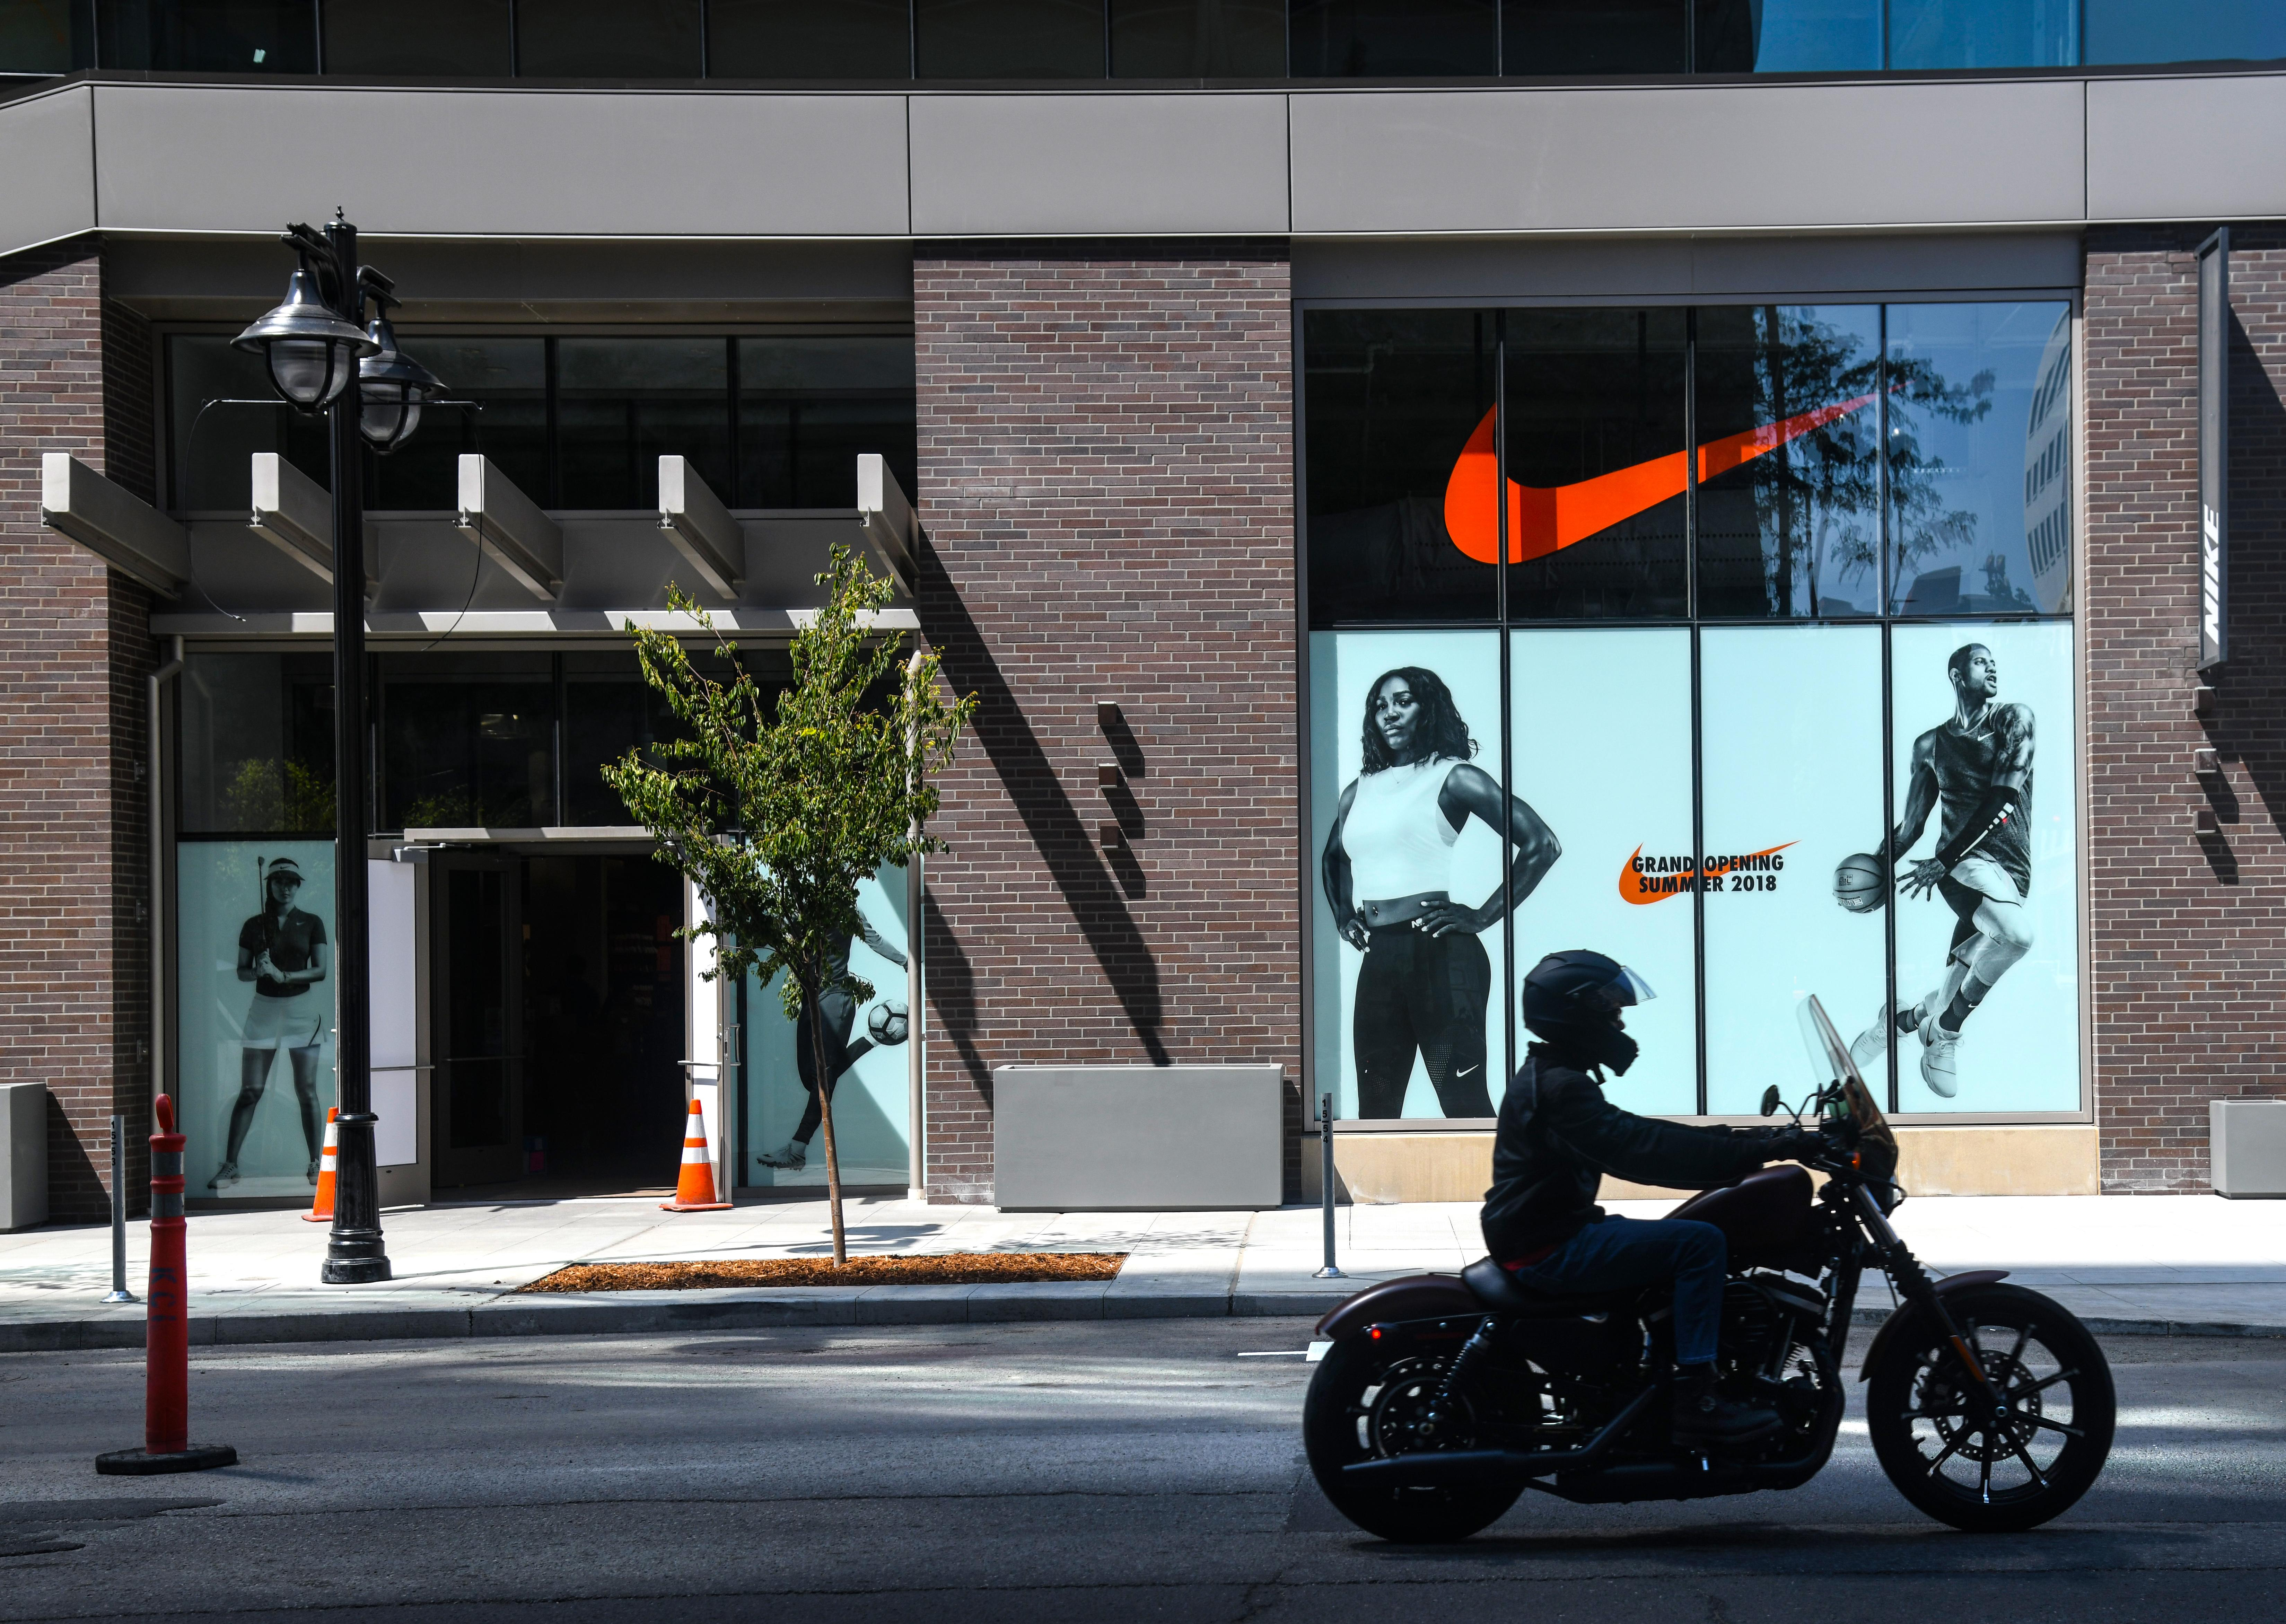 meilleures baskets 6cce8 85f10 Nike store in downtown Spokane draws politically driven ...